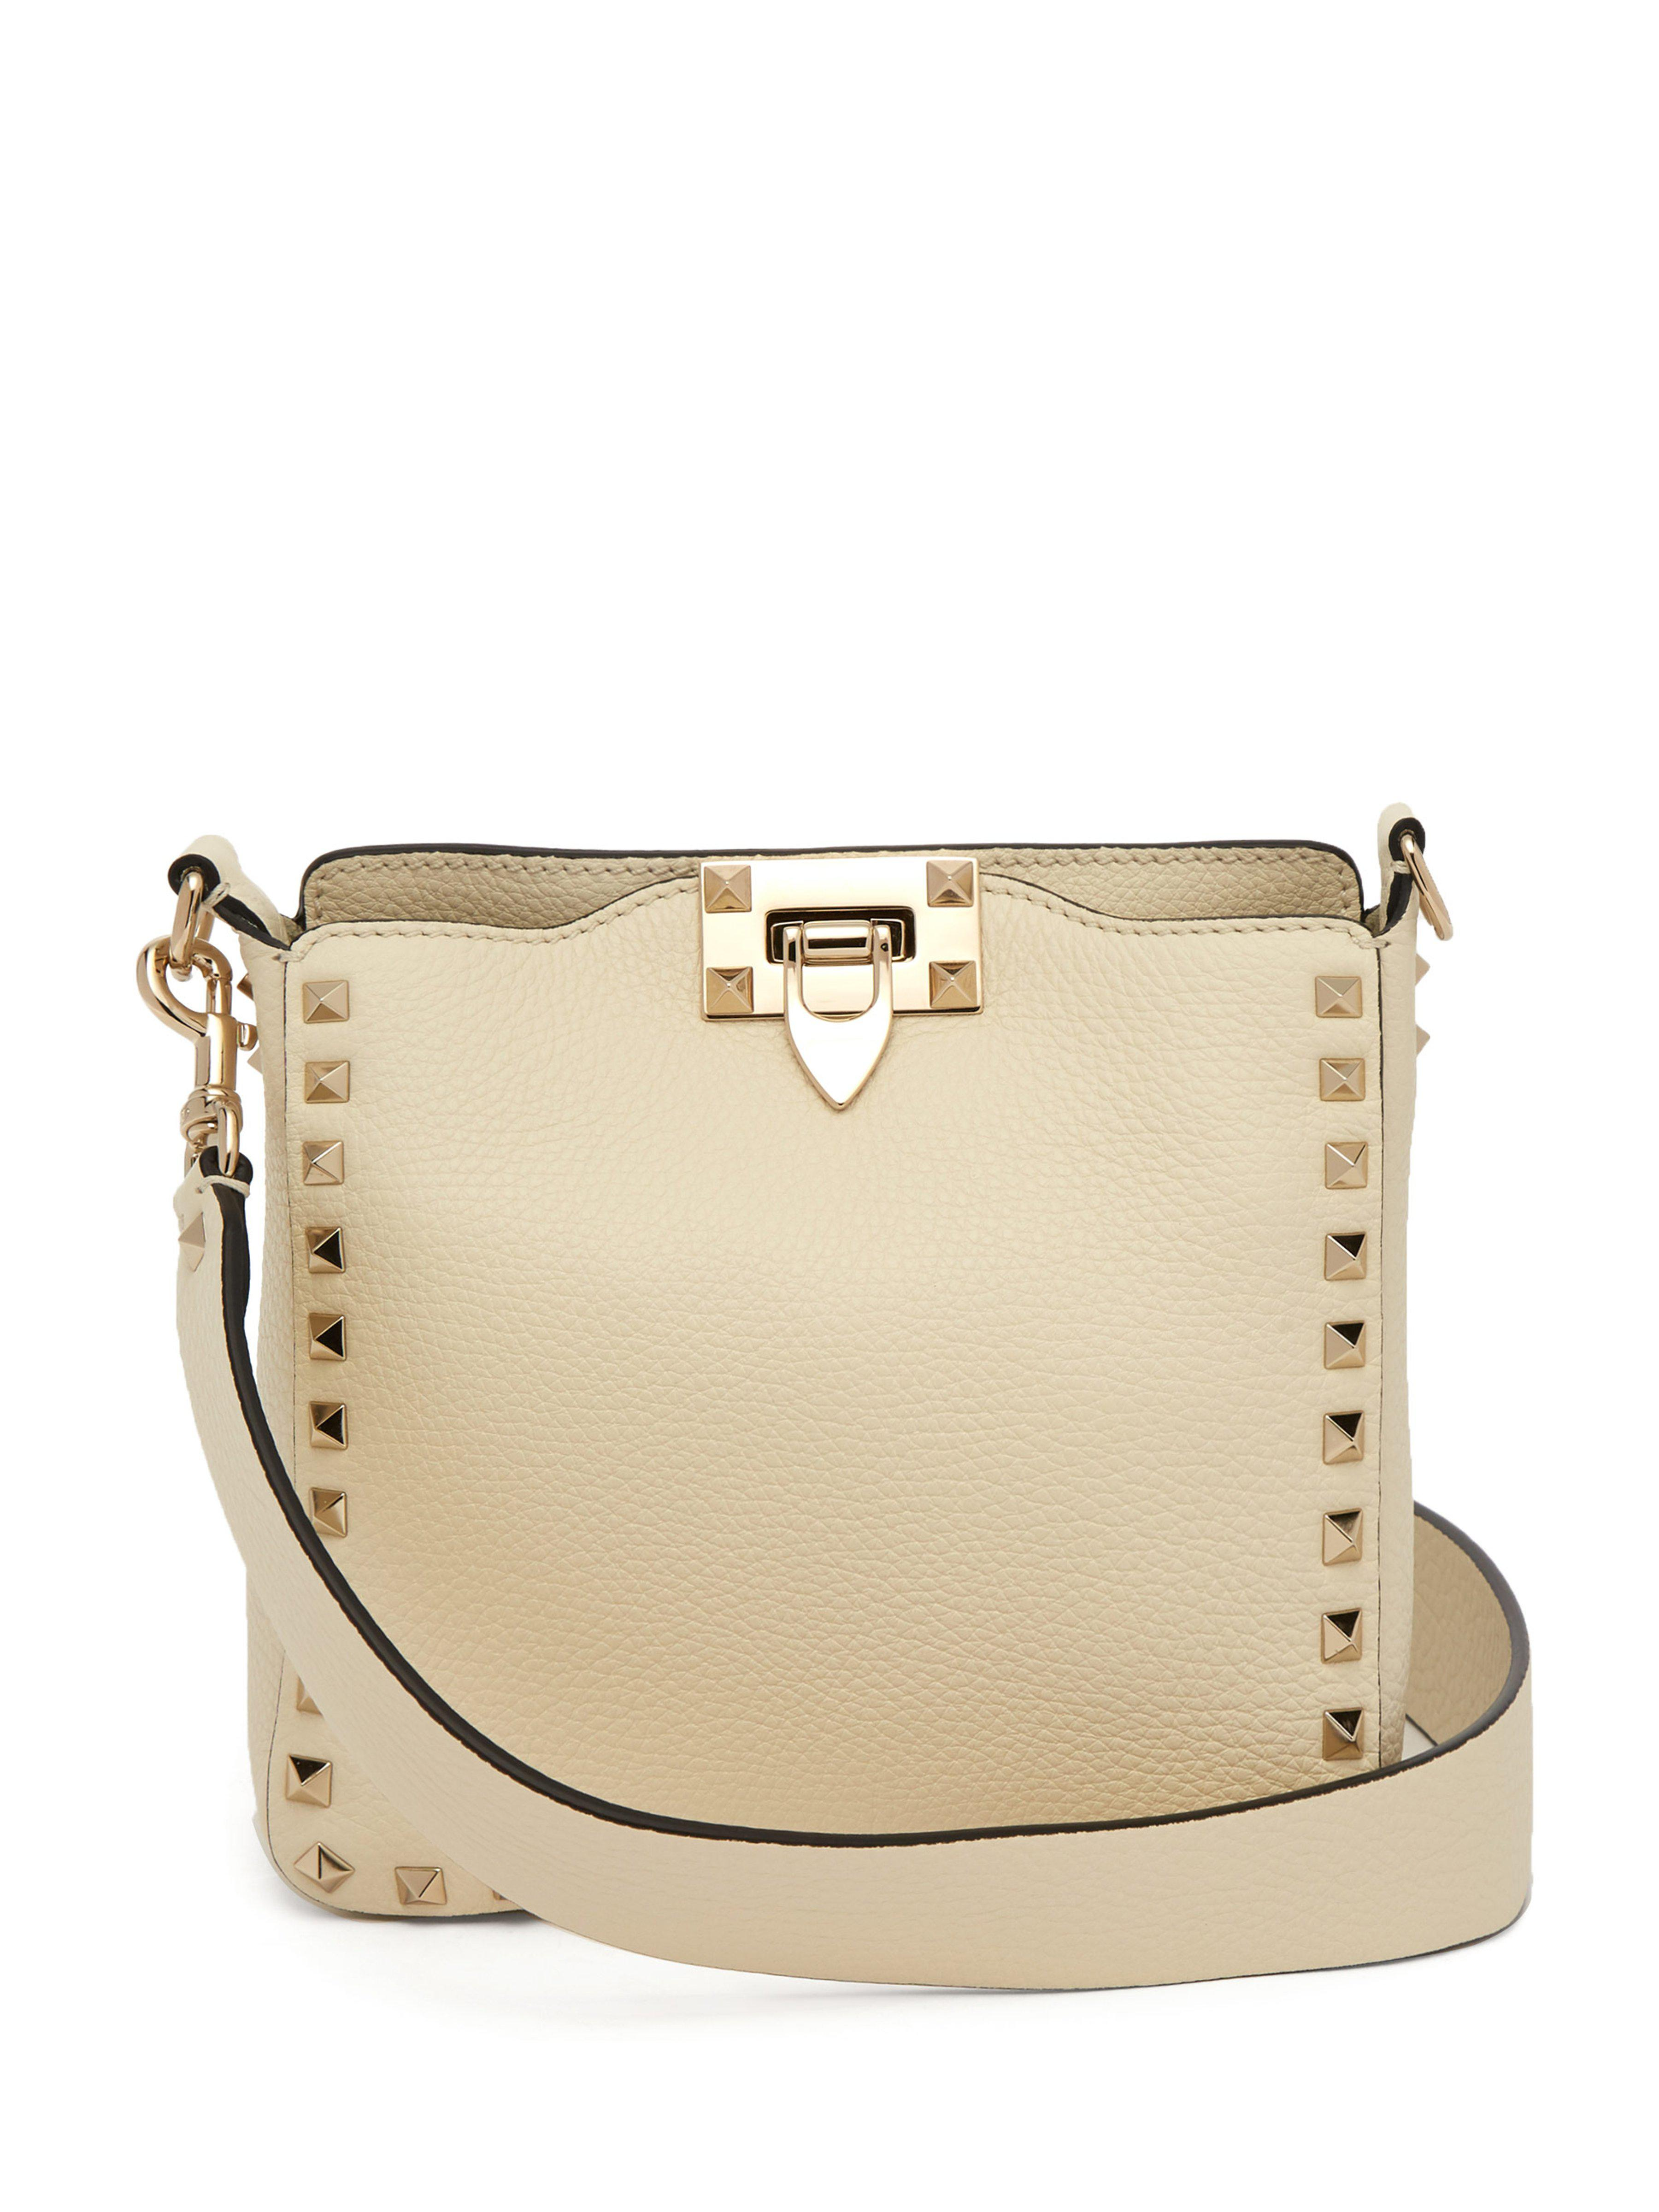 ca3063561797 Valentino Rockstud Grained Leather Cross Body Bag in White - Lyst